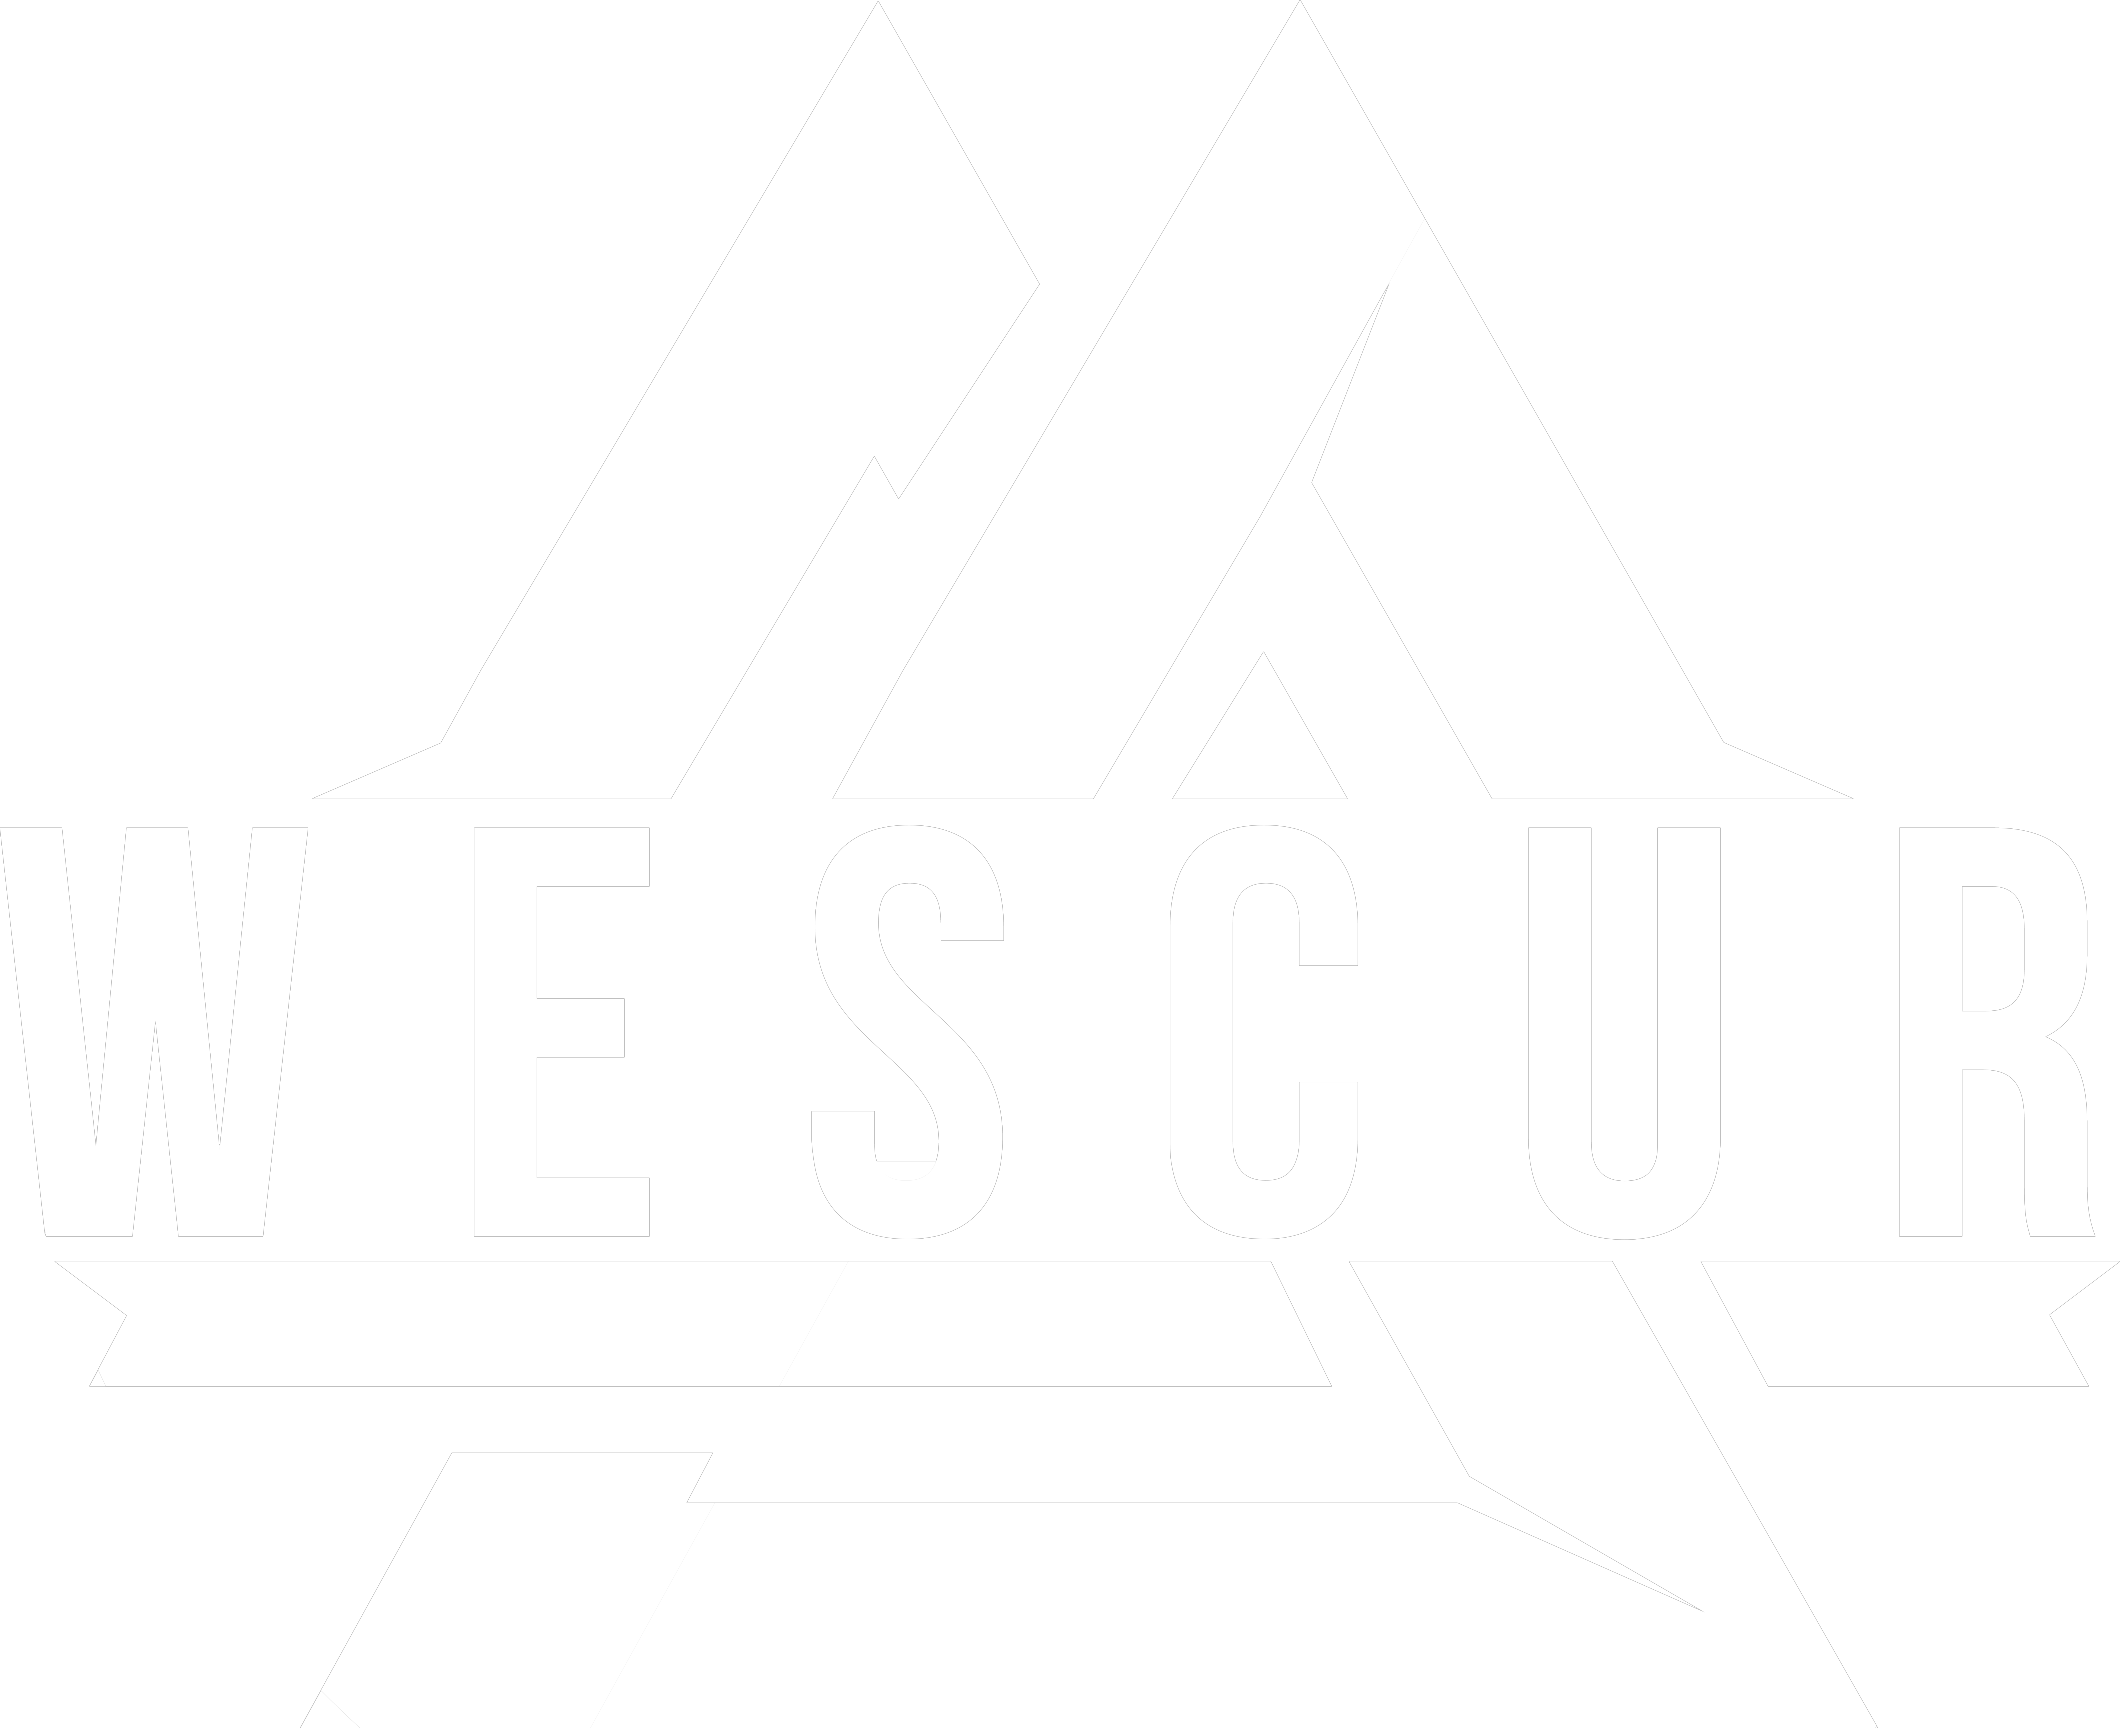 Logo wescur wit